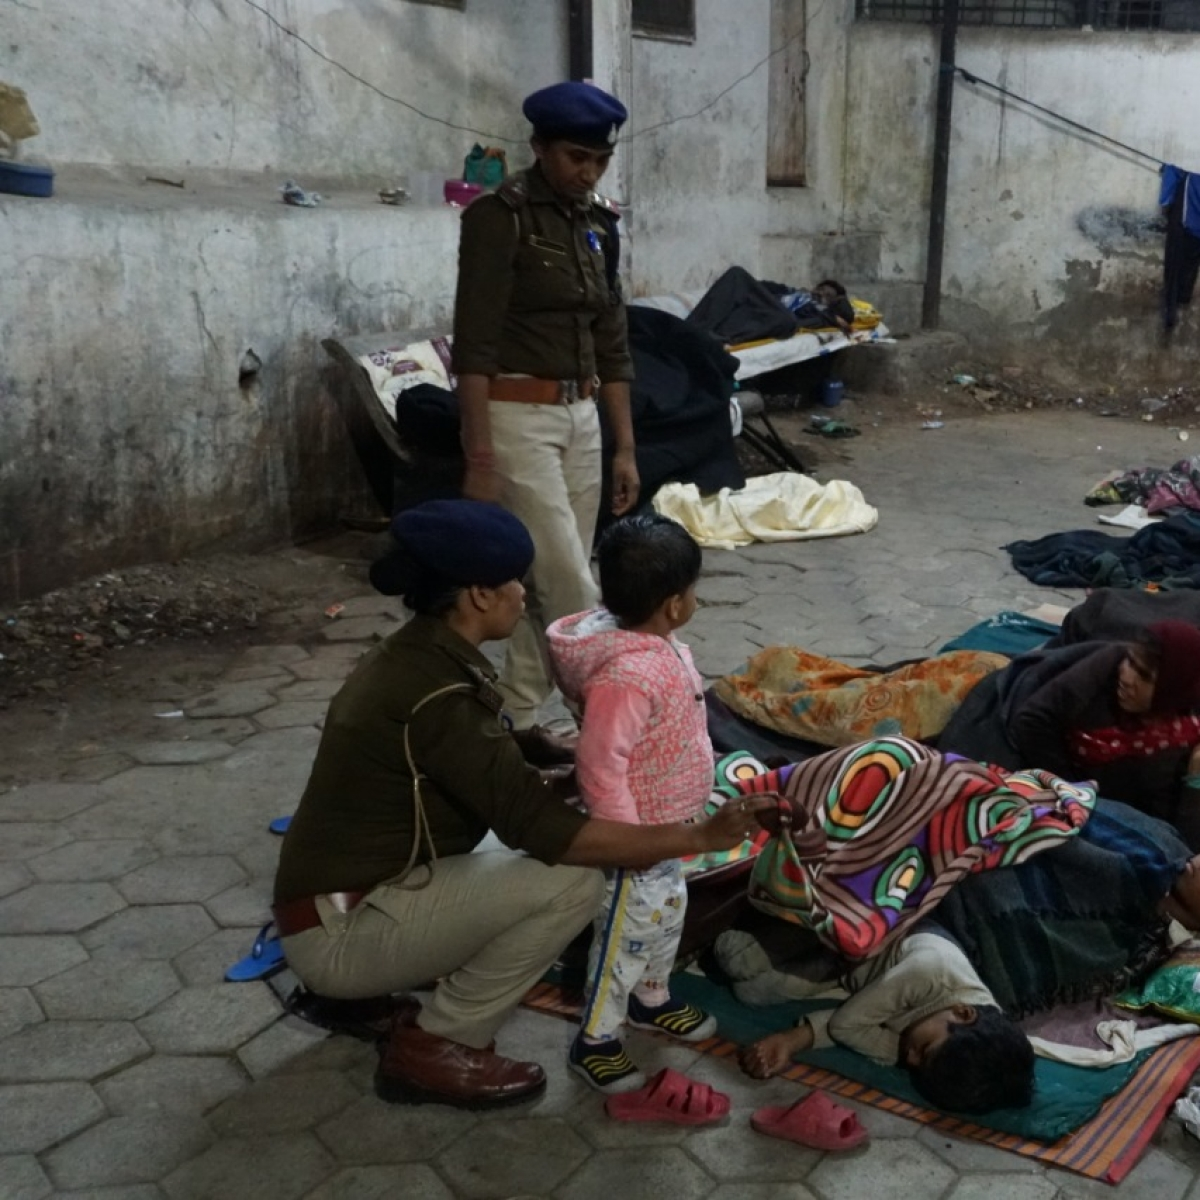 INDORE: Treat homeless people with humanity, officials tell staff